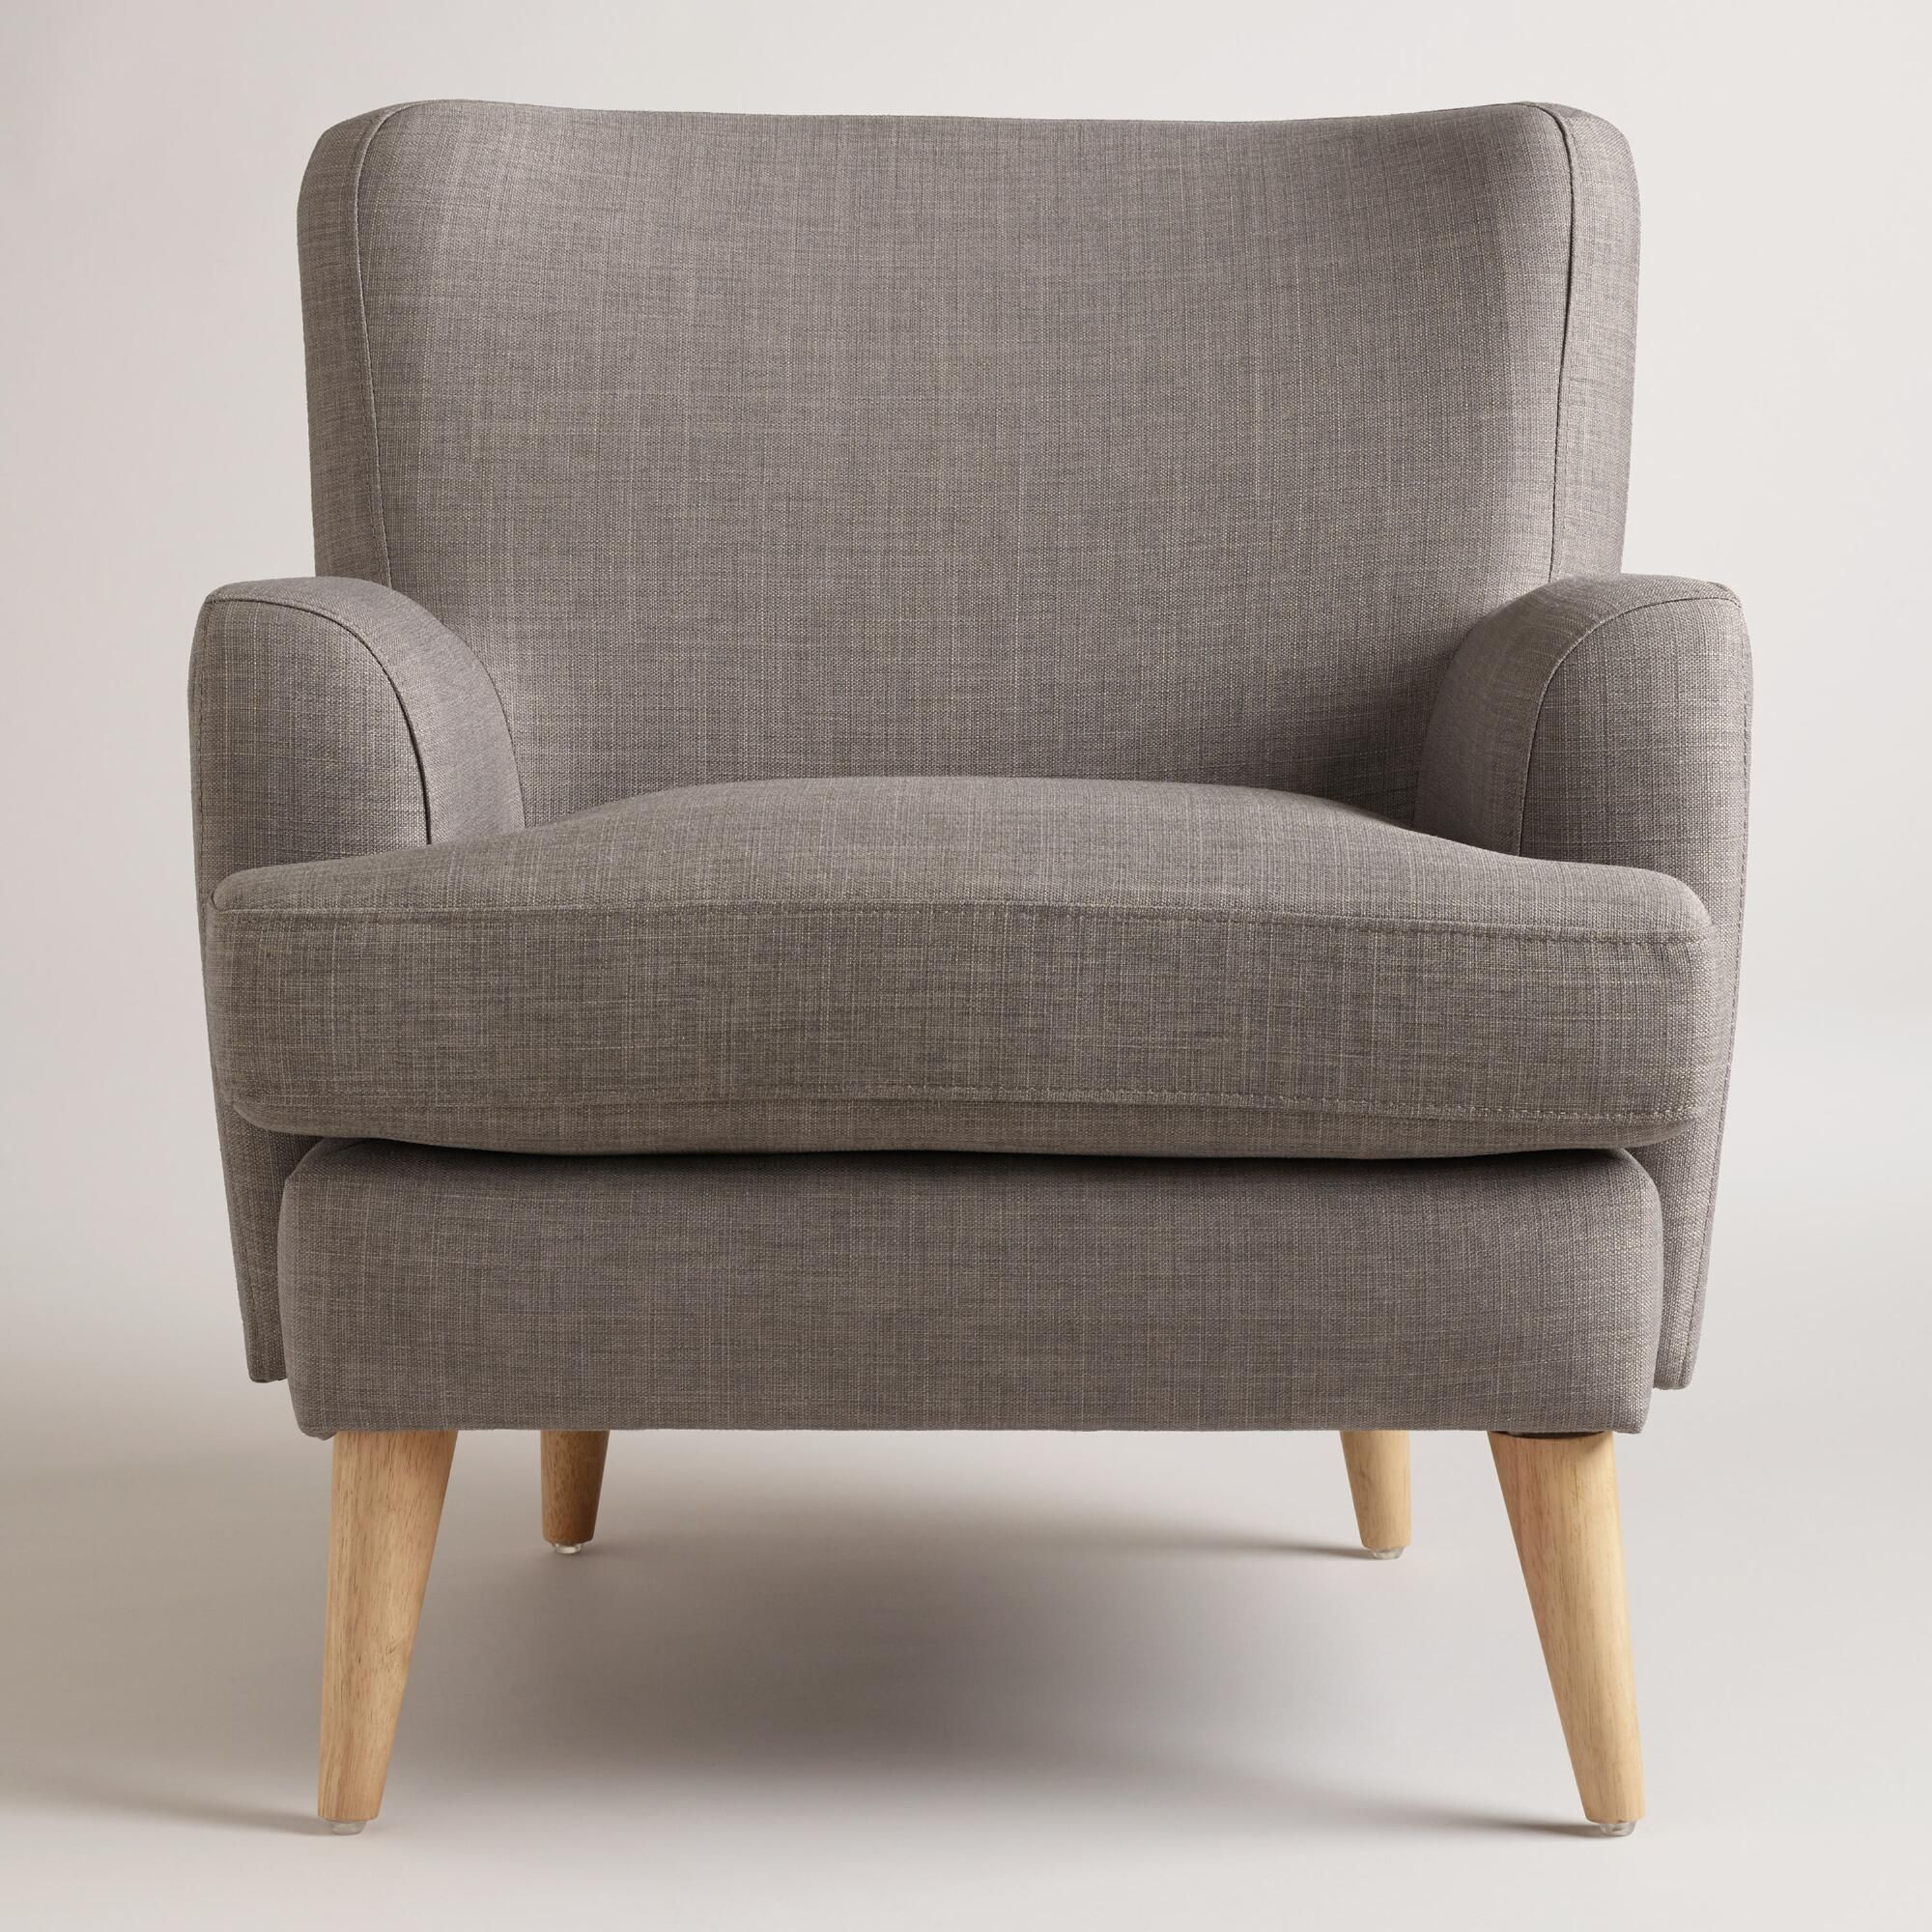 Upholstered in neutral gray woven fabric, our Danish-inspired chair exudes mid-century style with splayed legs and a classic profile.